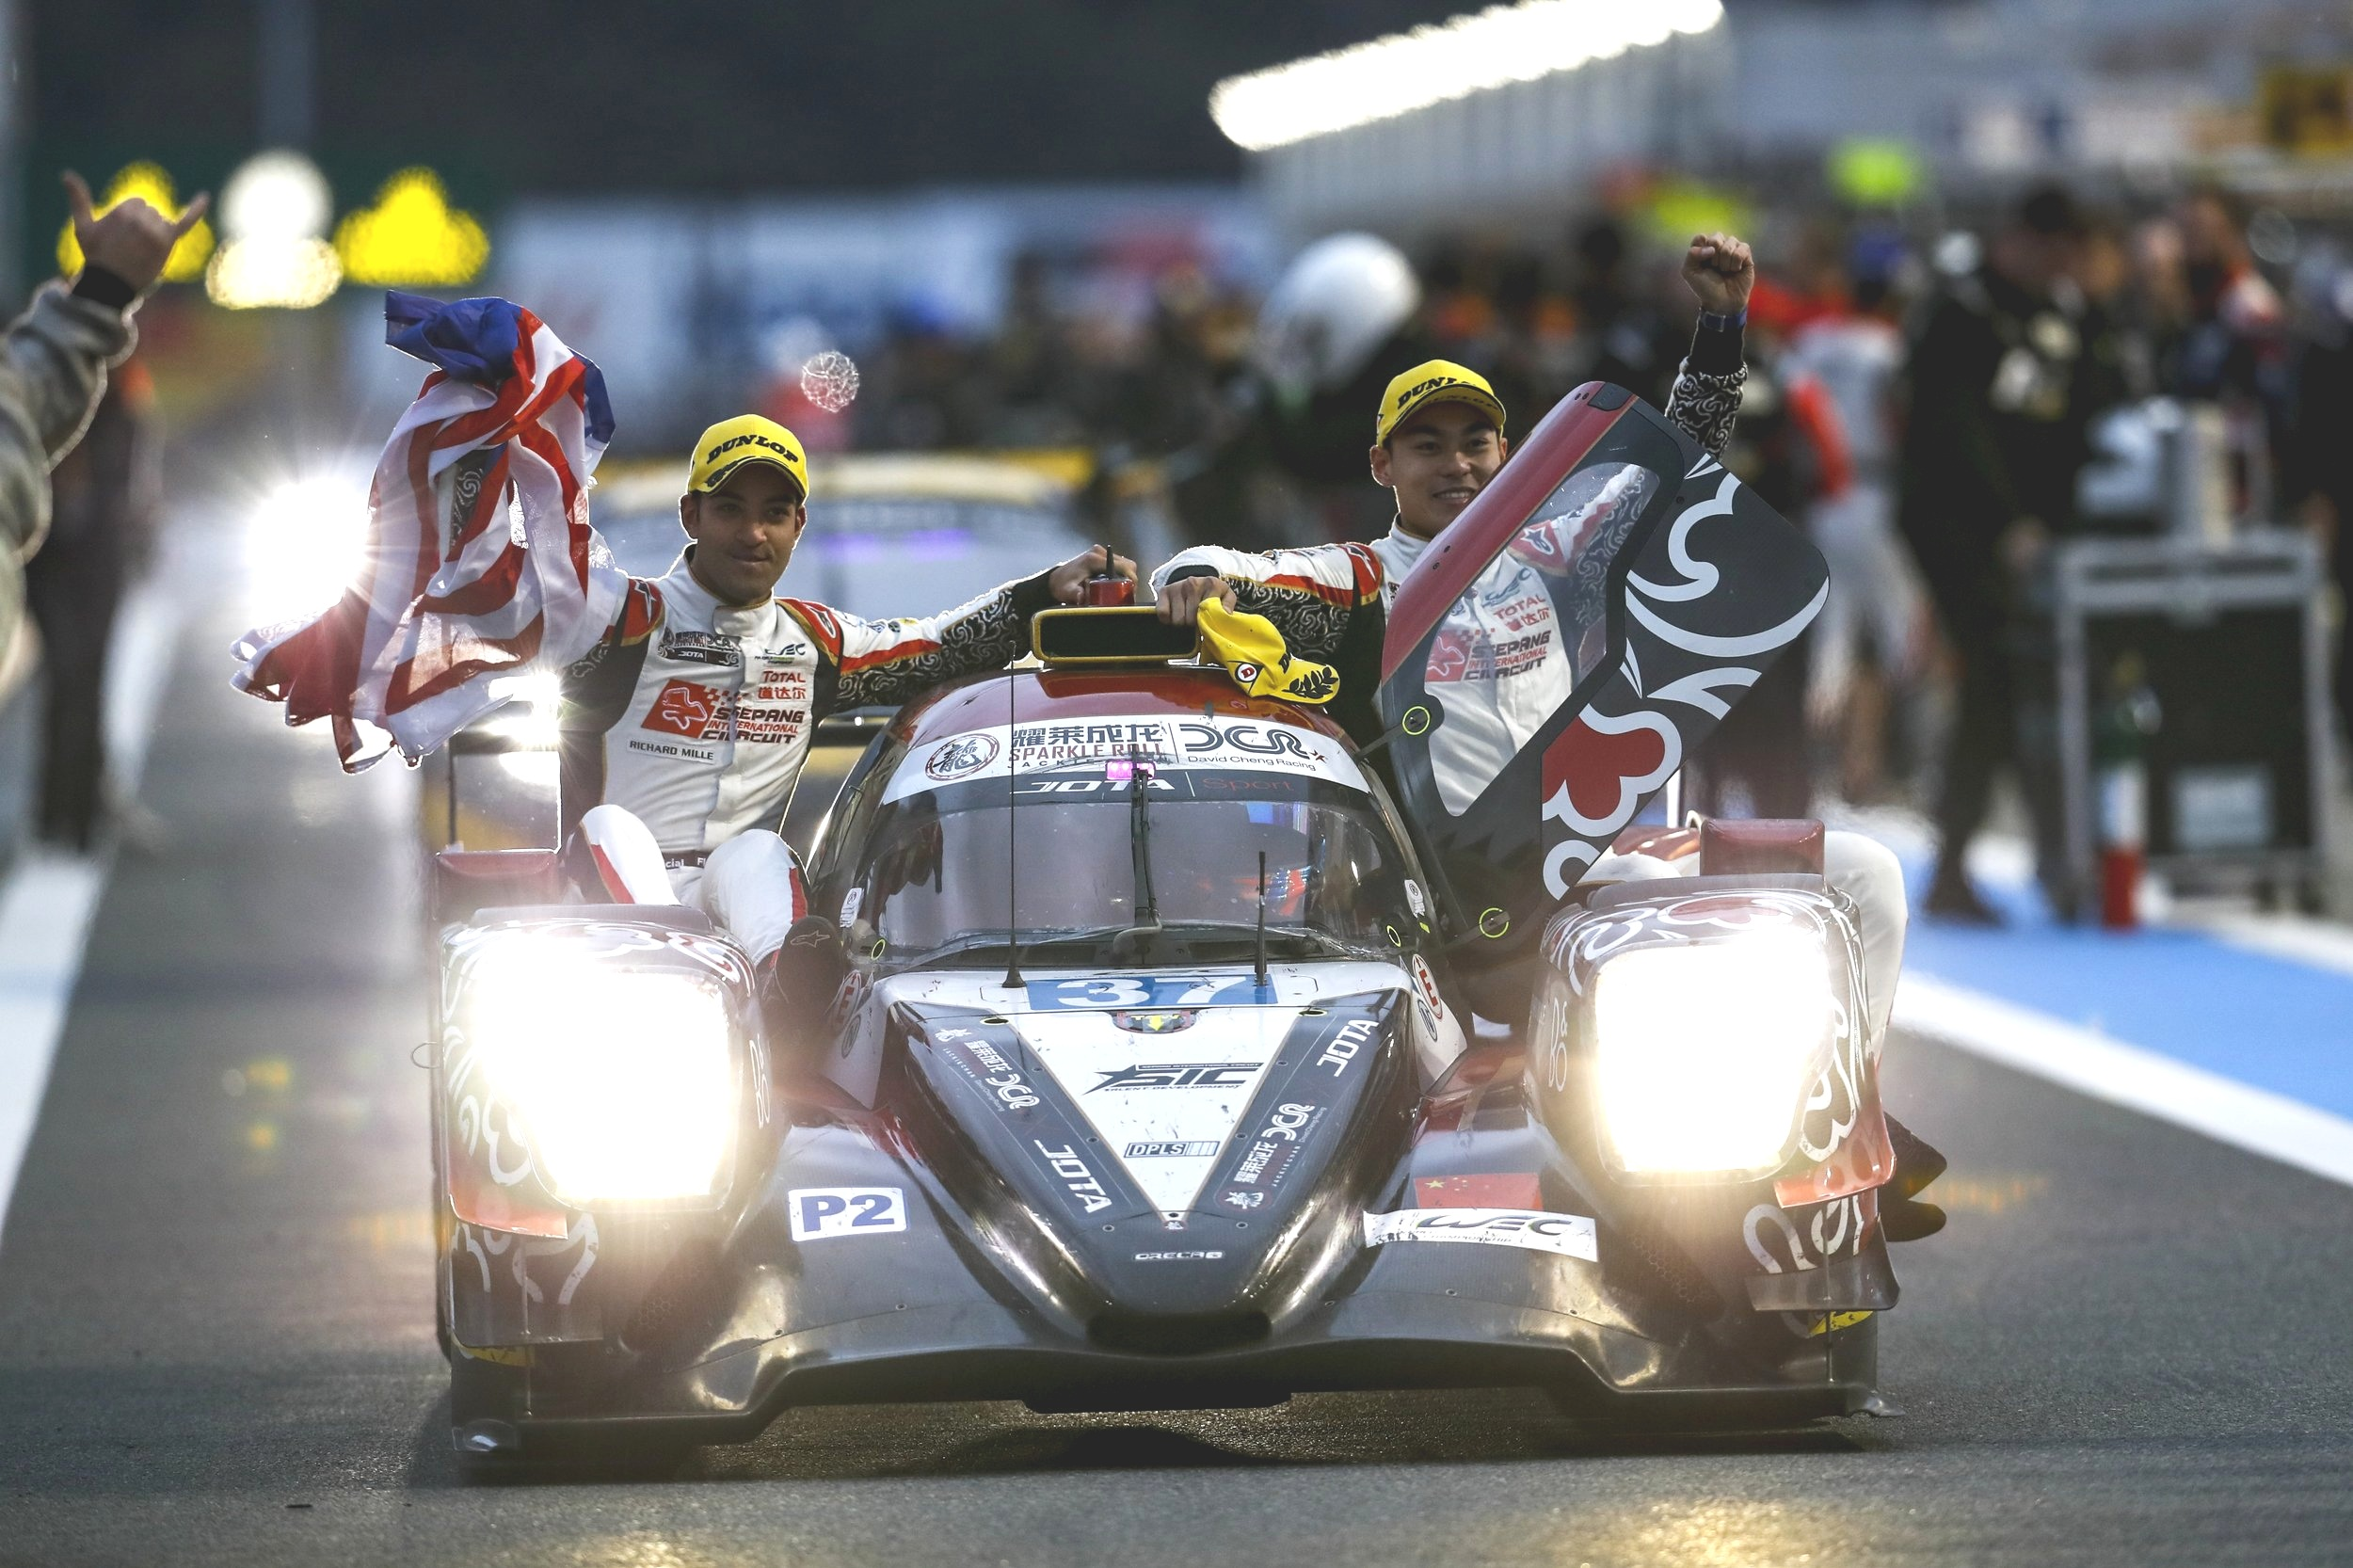 2018 - World Endurance Championship (WEC) - LMP224 Hours of LE MANS (debut) - 4th6 Hours of Silverstone - 2nd6 Hours of Fuji - 1st*First all Asian line-up in HISTORY to win in WEC